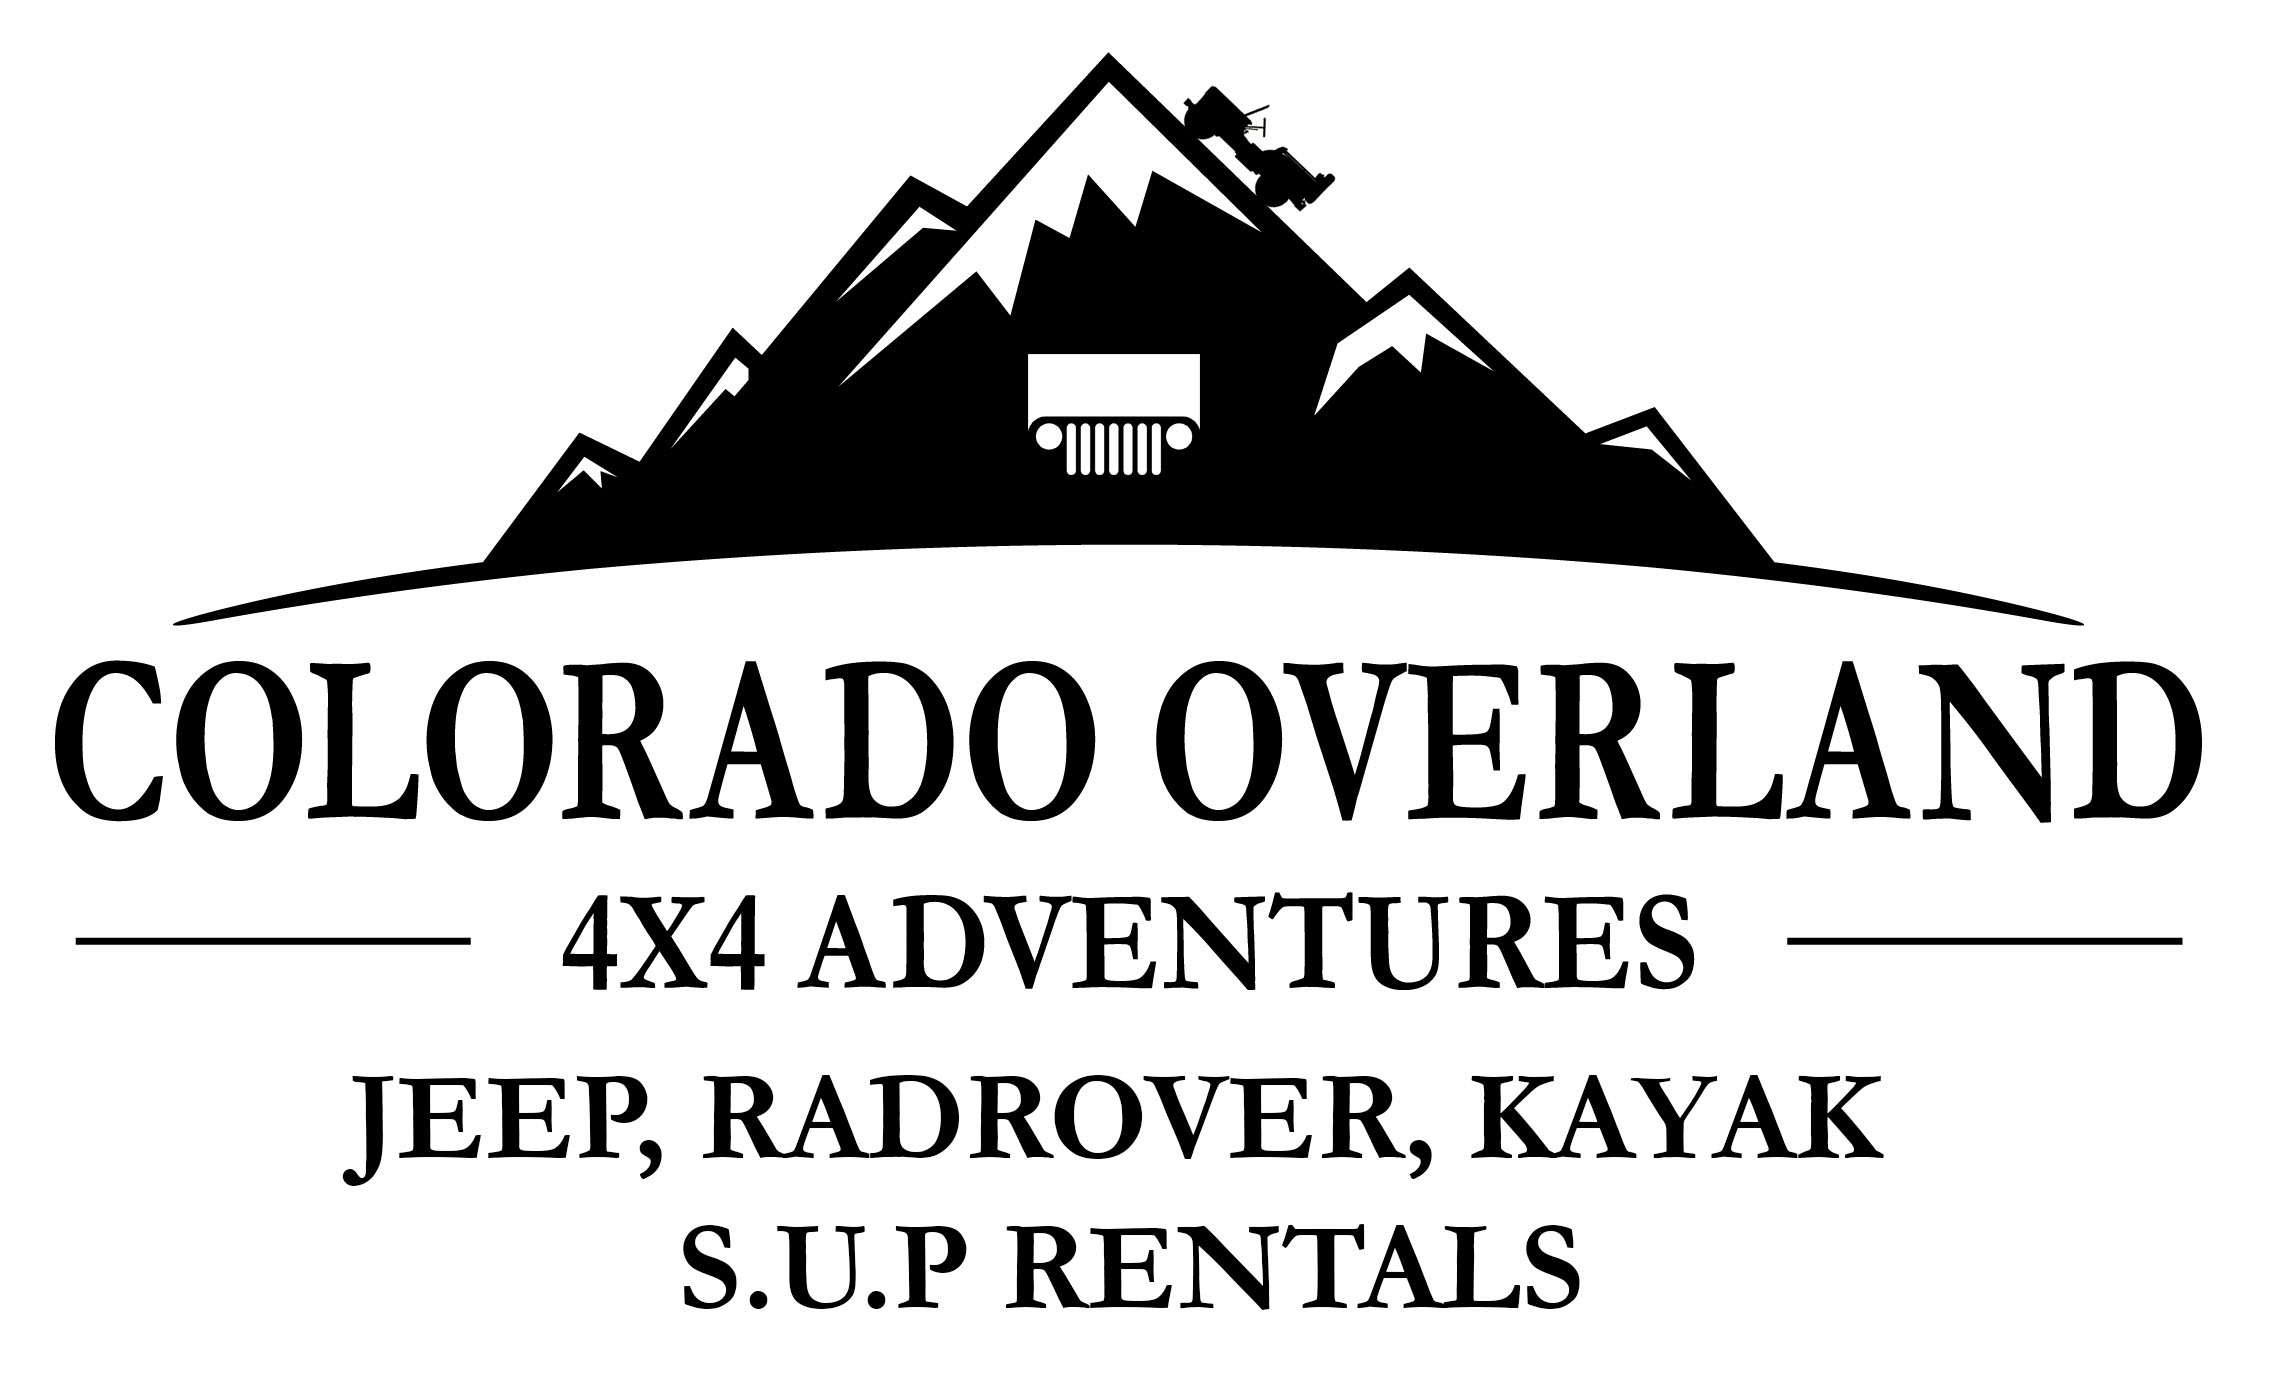 Colorado Overland 4x4 Adventures